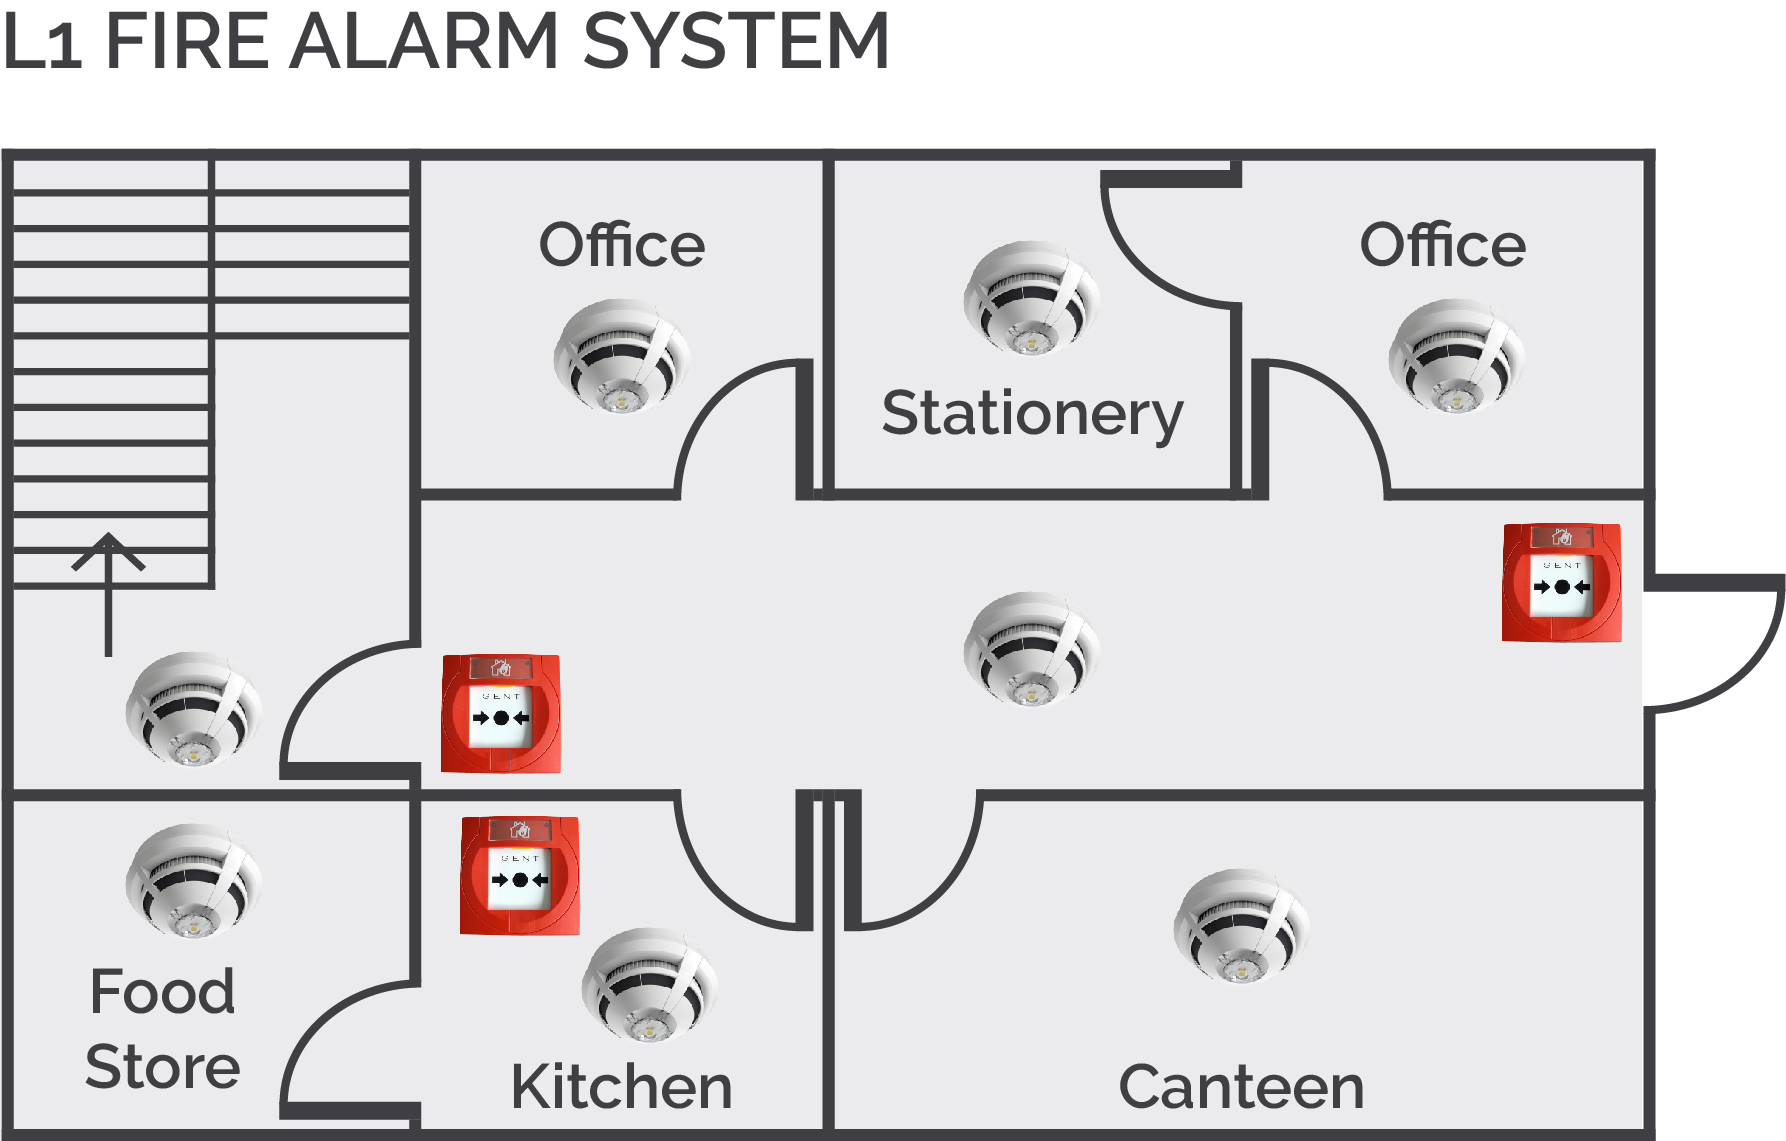 Schematic Diagrams Flame Detector Gas Detector And Smoke Detector Are